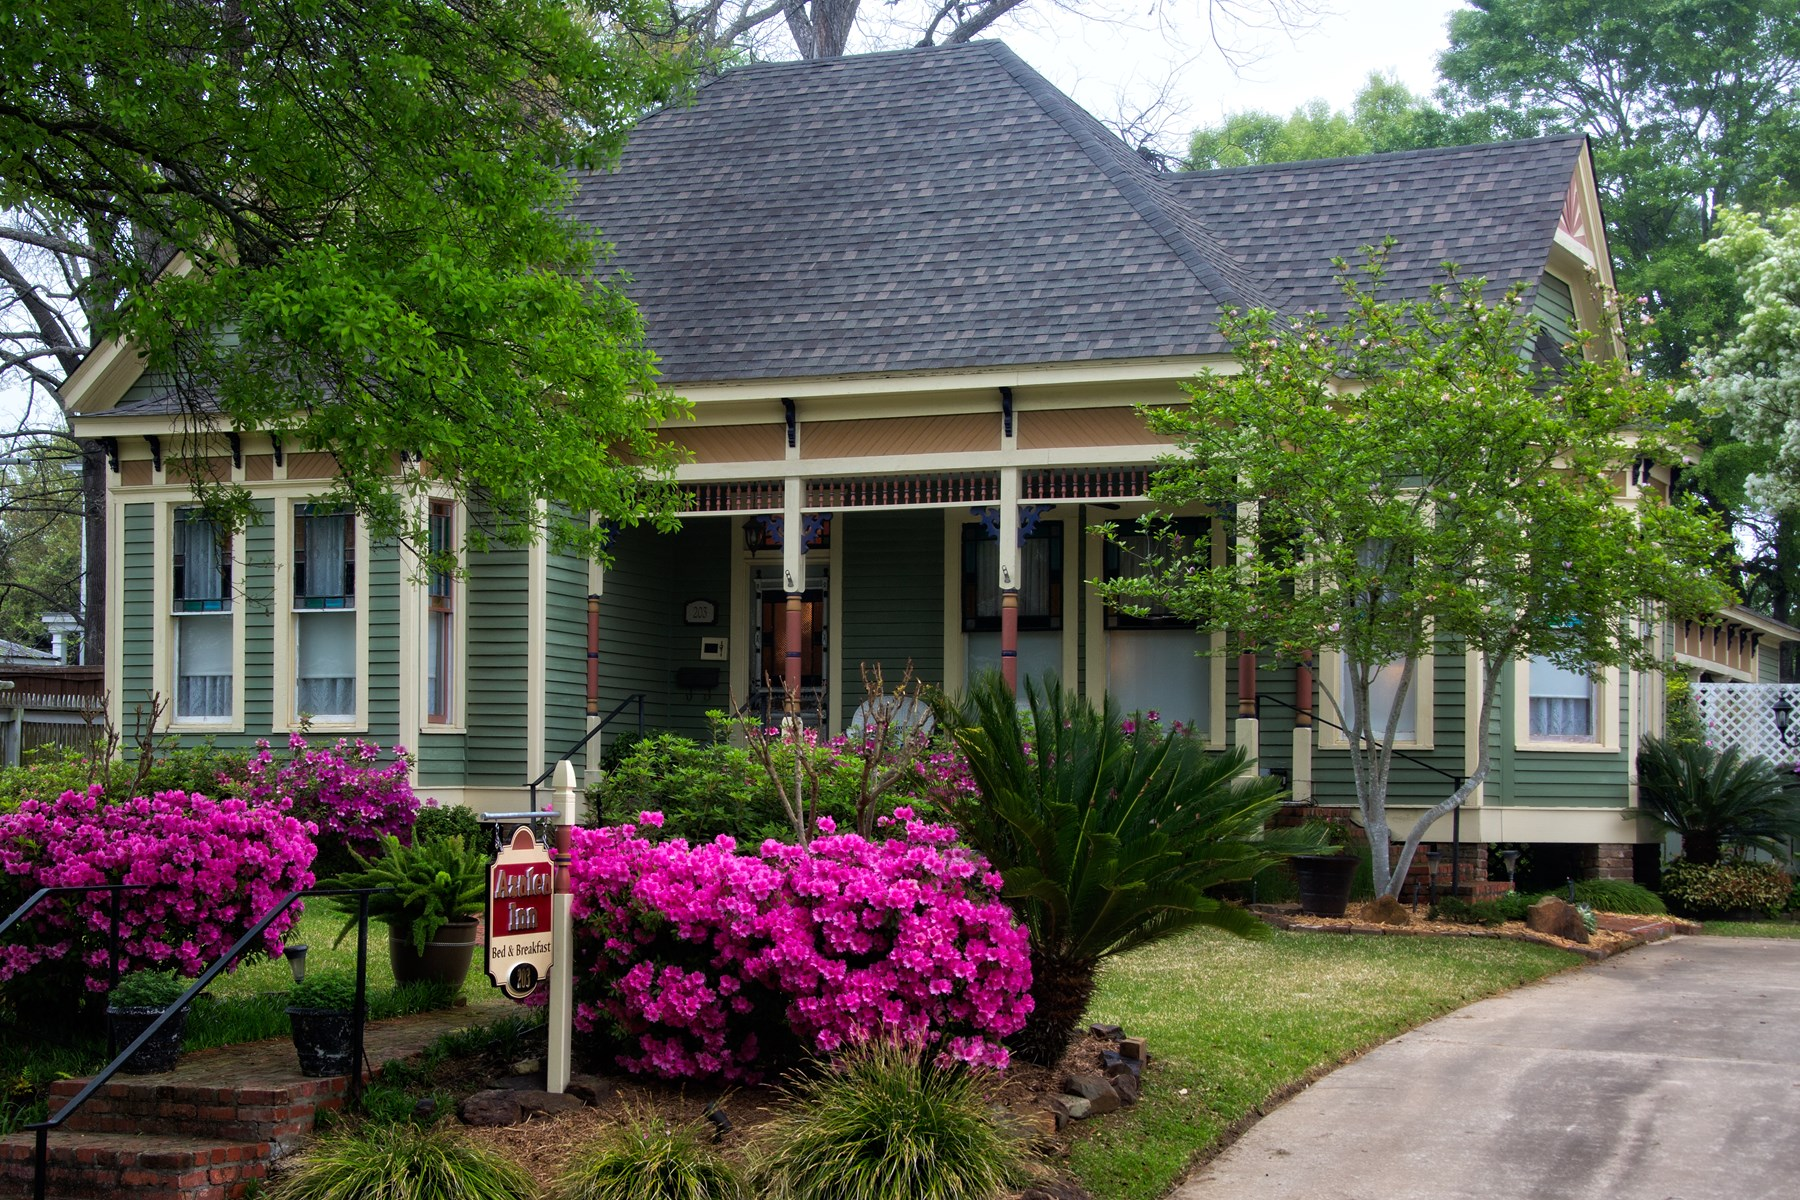 Azalea Bed And Breakfast